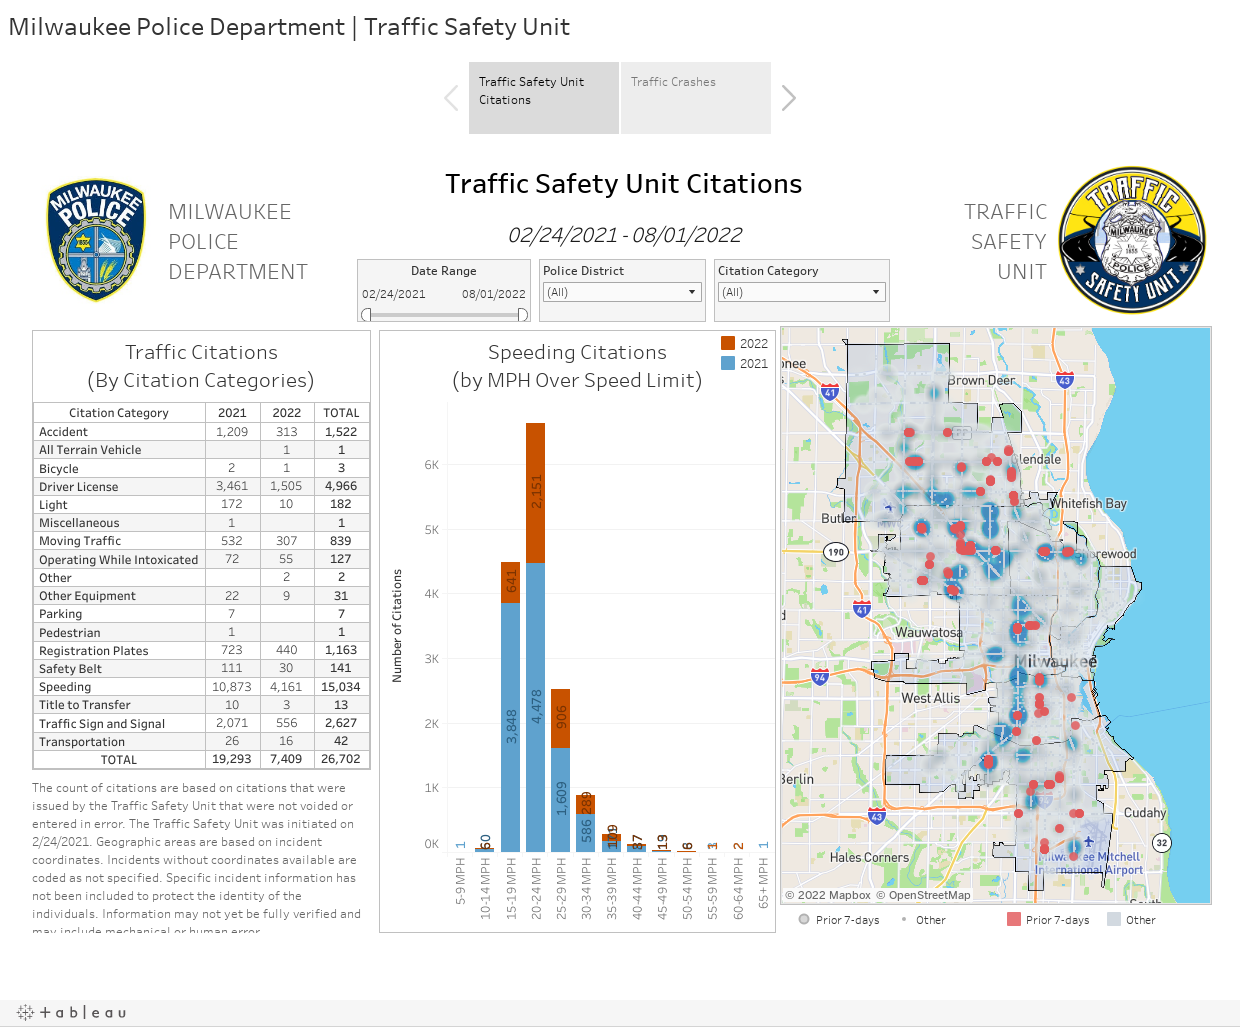 Milwaukee Police Department | Traffic Safety Unit